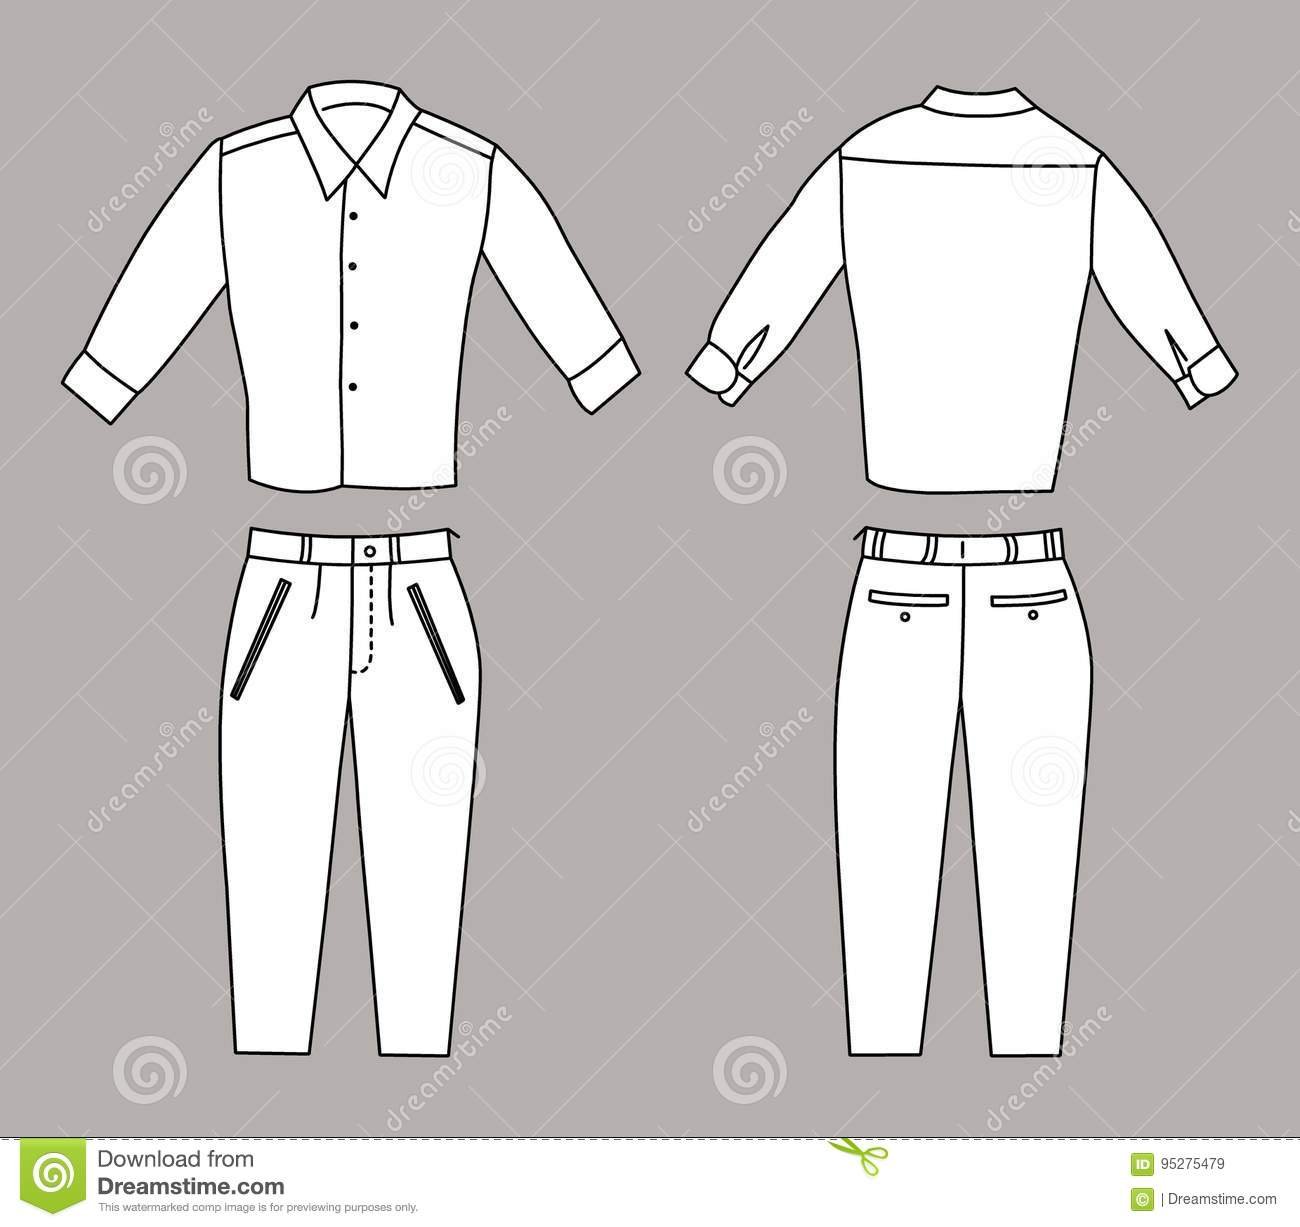 vector illustration of business shirt and pants front and back views